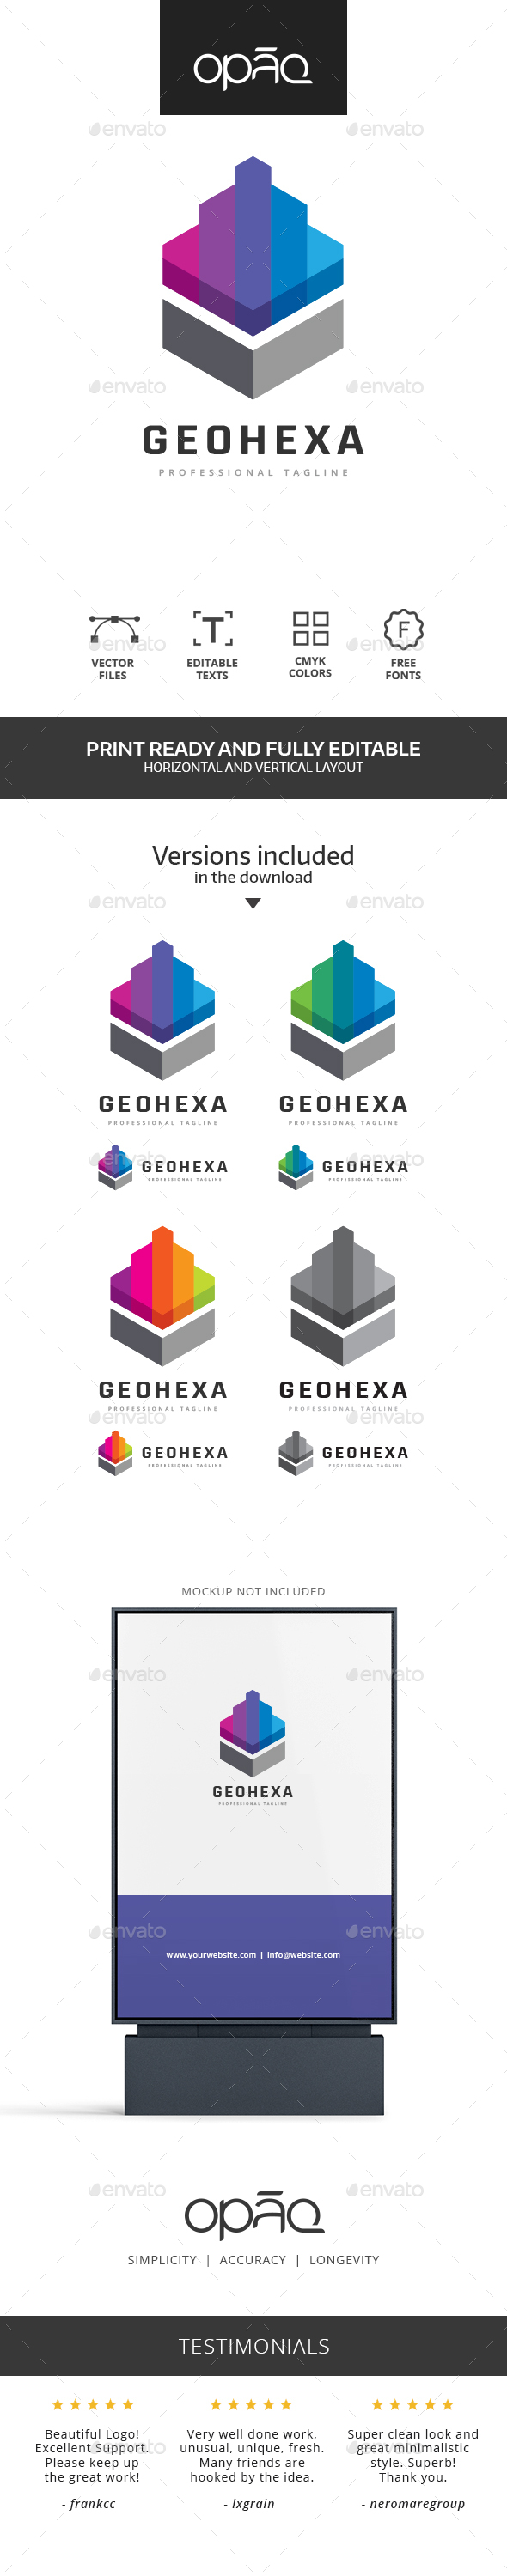 Need a new professional logo for your company or project? Opaq Media Design delivers great quality and trending logos for every taste and needs. You will find that all of our logos are highly skilled and there's surely one interesting for you. Our main goal is to bring quality logos all around the world.  .ai (illustrator CC) .ai (illustrator CS) .eps (illustrator 10) .psd (photoshop).jpg (white background) .png (transparent background) .txt (links to the free fonts)  For a scalable and vector version for web, open the .AI or .EPS version and «save as» the logo in .SVGLOGO SPECIFICATIONS  Full vectors 100% editable and scalable Editable colors CMYK colors Print ready Free fonts  The preview mockup is not included in the download file. It's